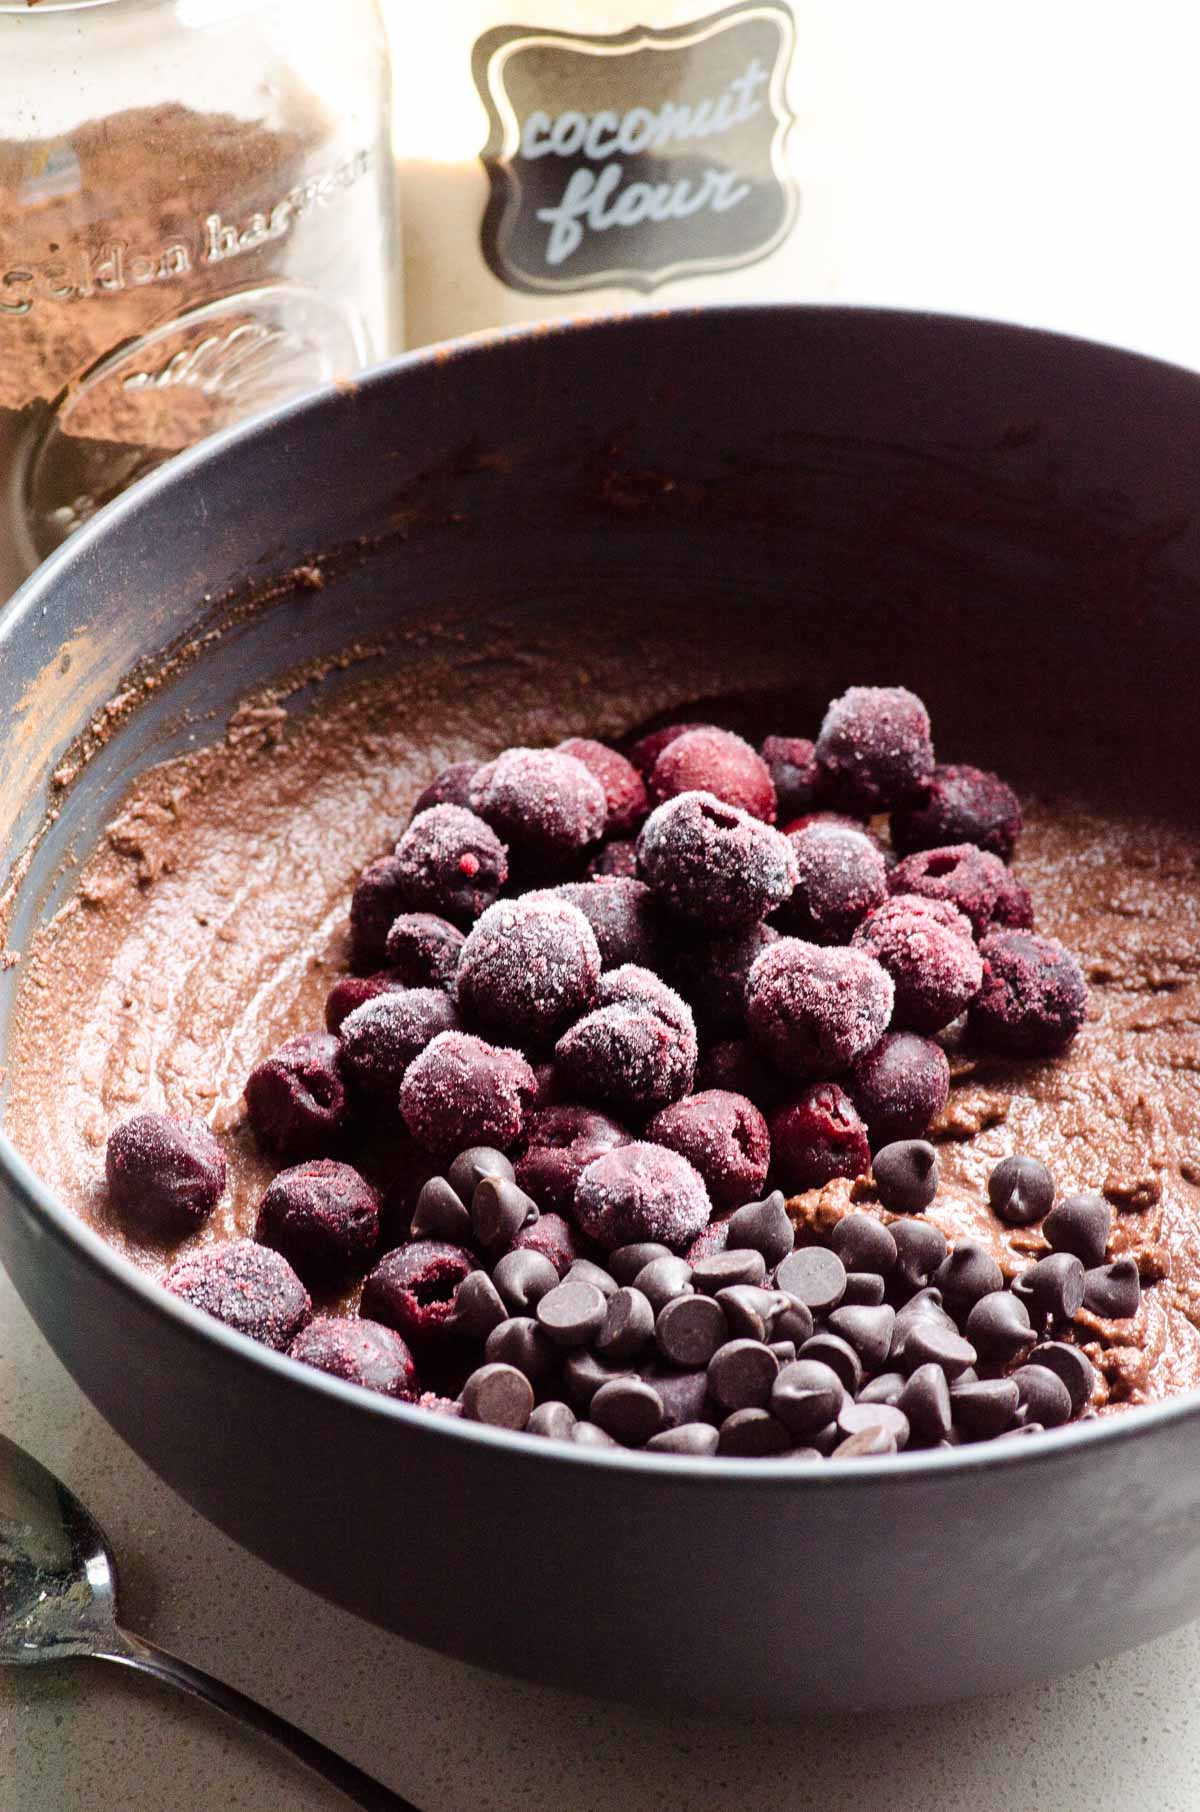 Frozen cherries and chocolate chips on top of batter